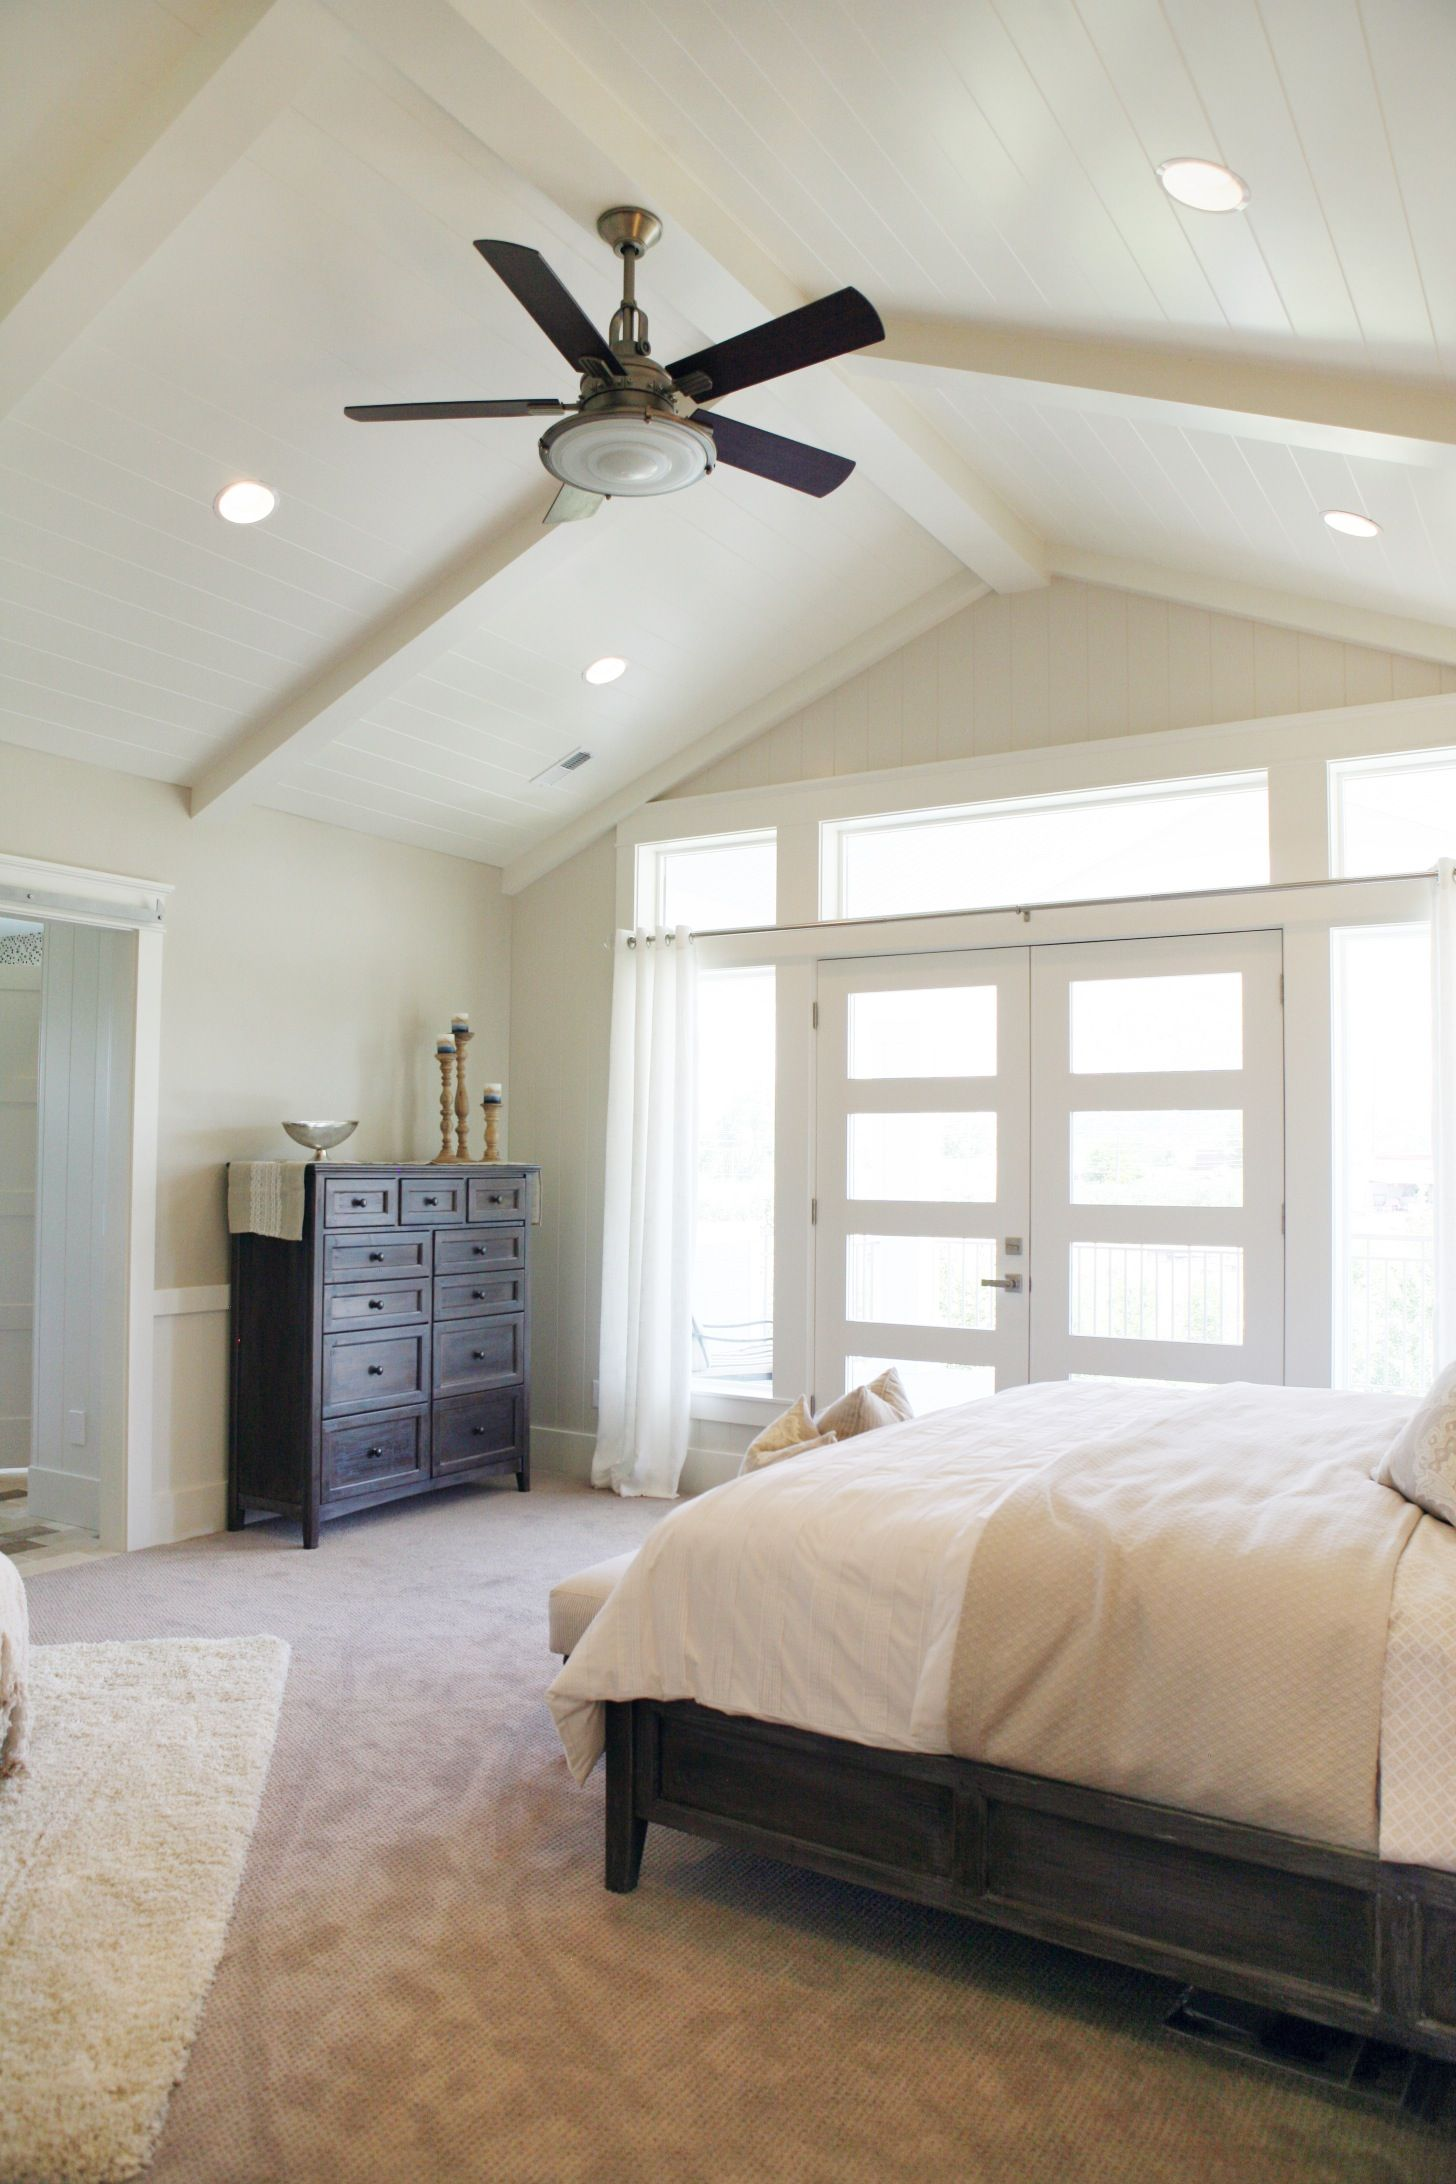 Master bedroom high ceiling bright windows and a fan space pinterest ceiling vaulting Master bedroom with sloped ceiling